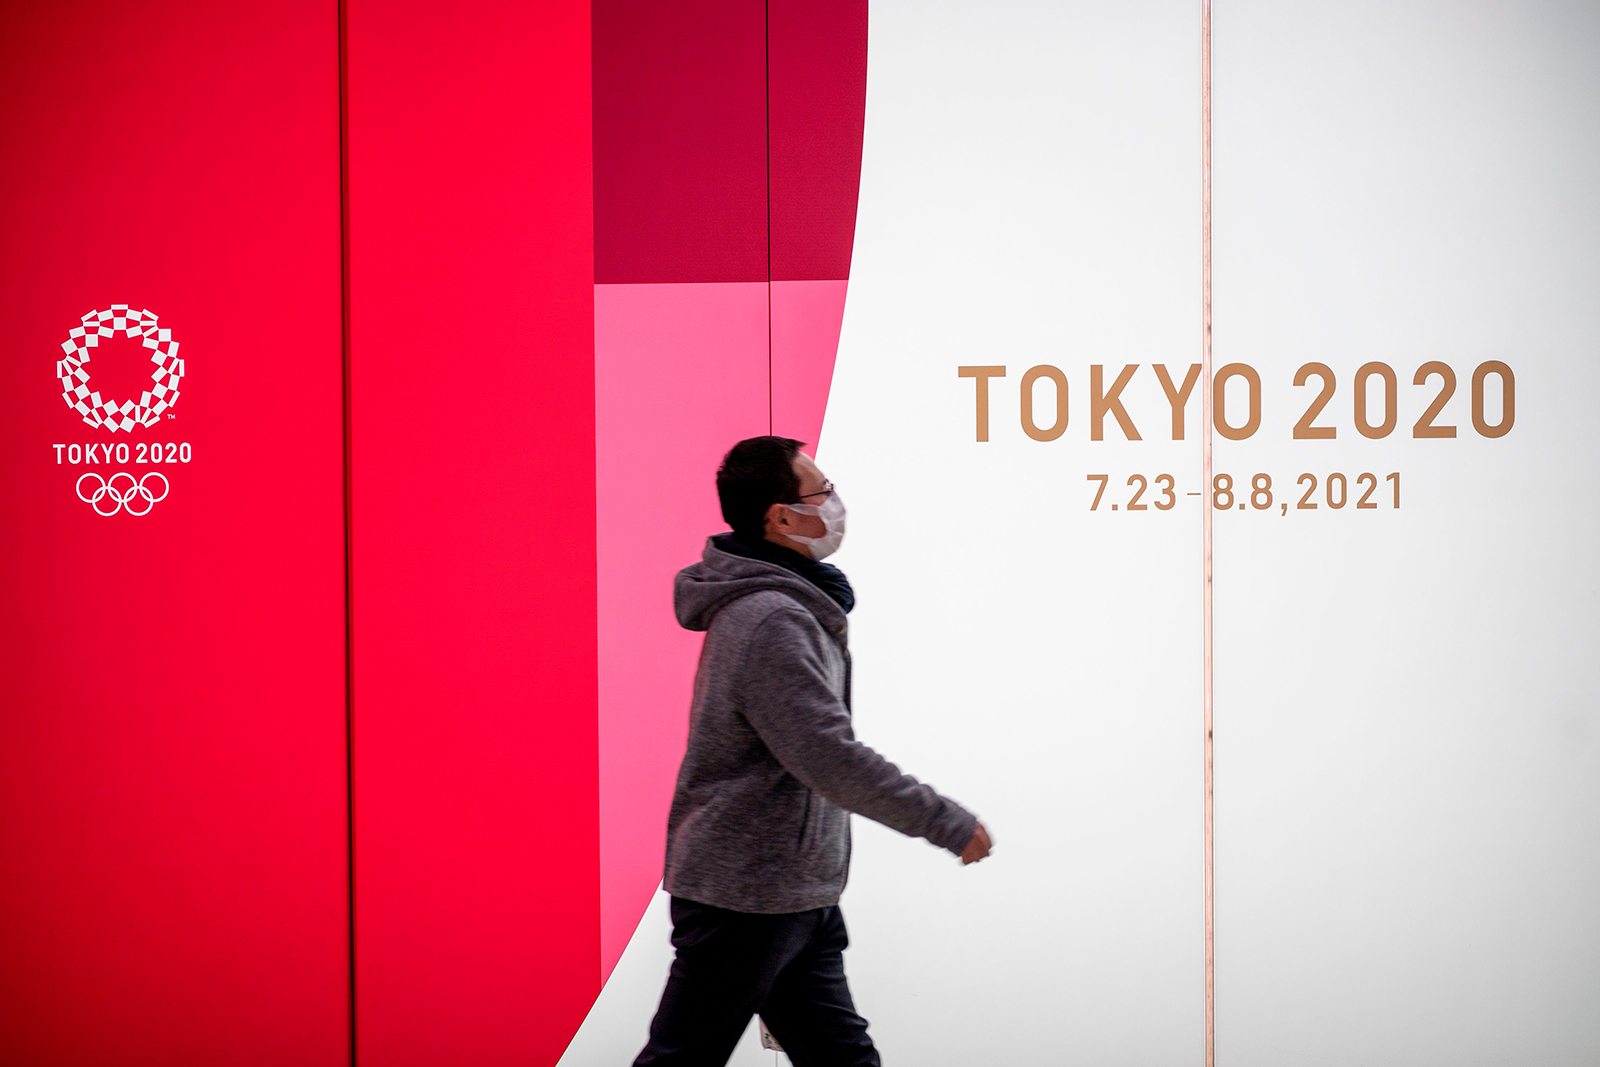 A man walks past Tokyo 2020 Olympic and Paralympic Games advertising in Tokyo's Shinjuku district on January 20.